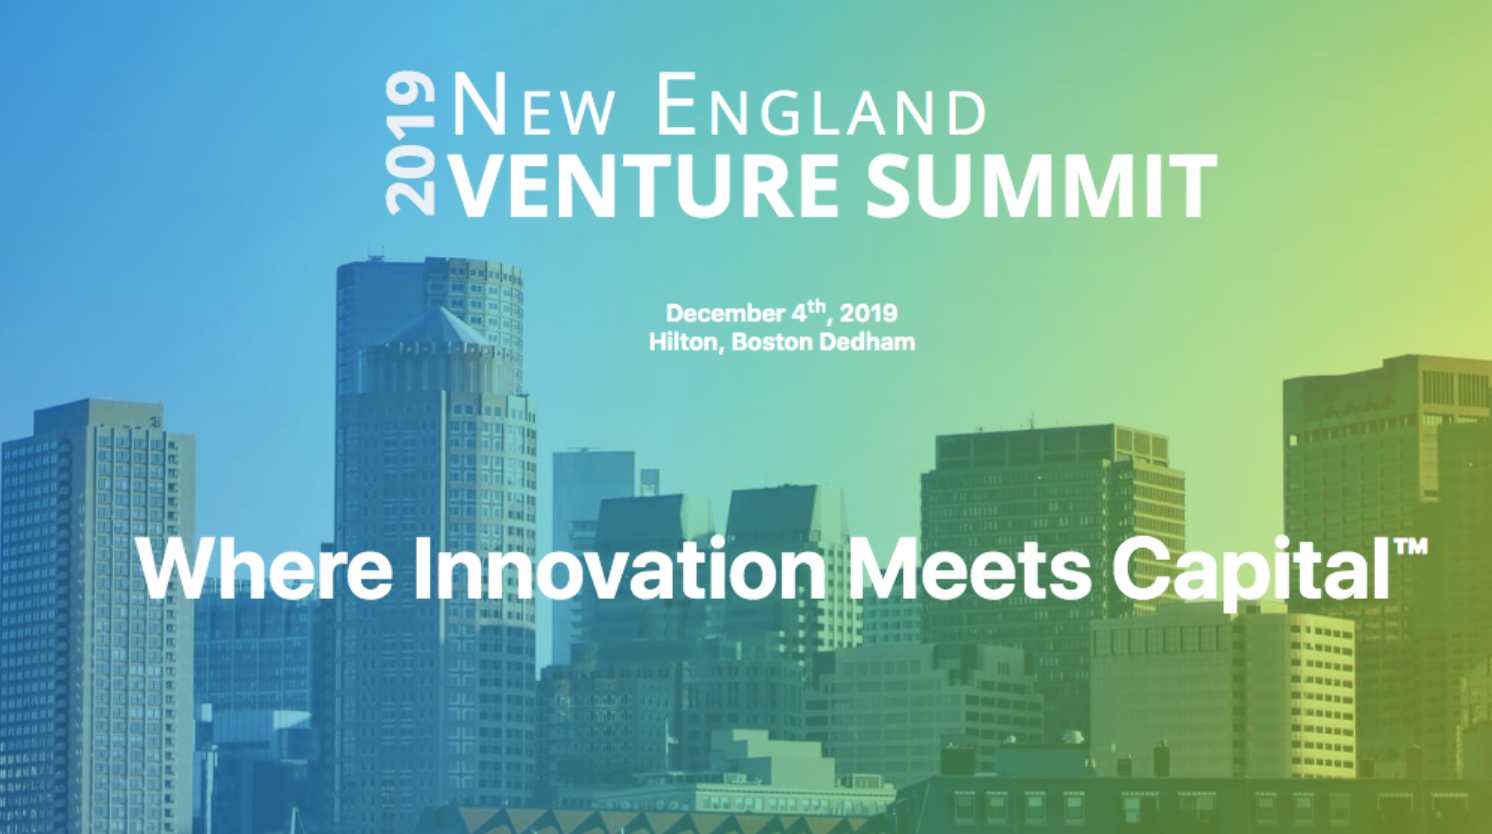 New England Venture Summit